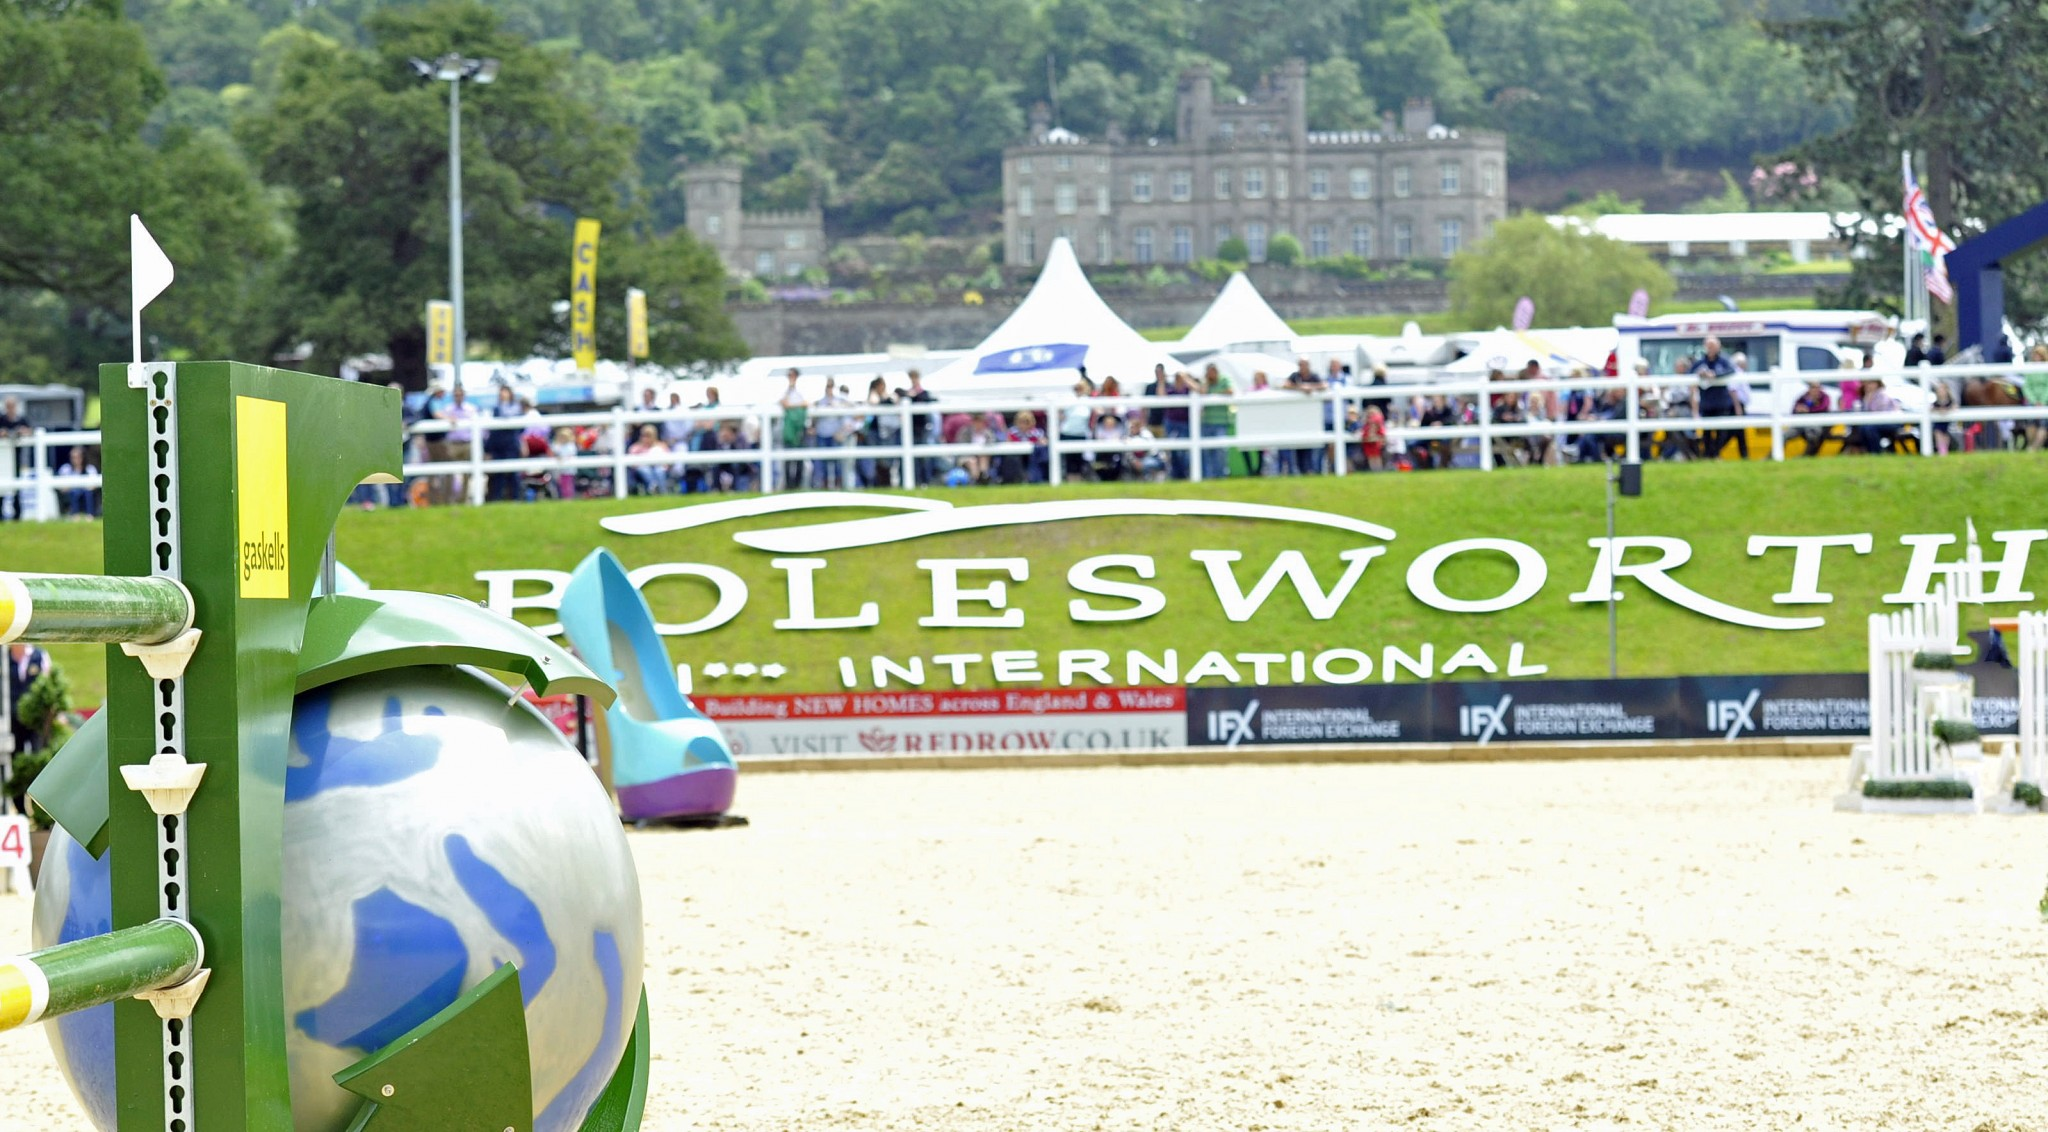 Bolesworth - Book Your Camping for Bolesworth International 2016